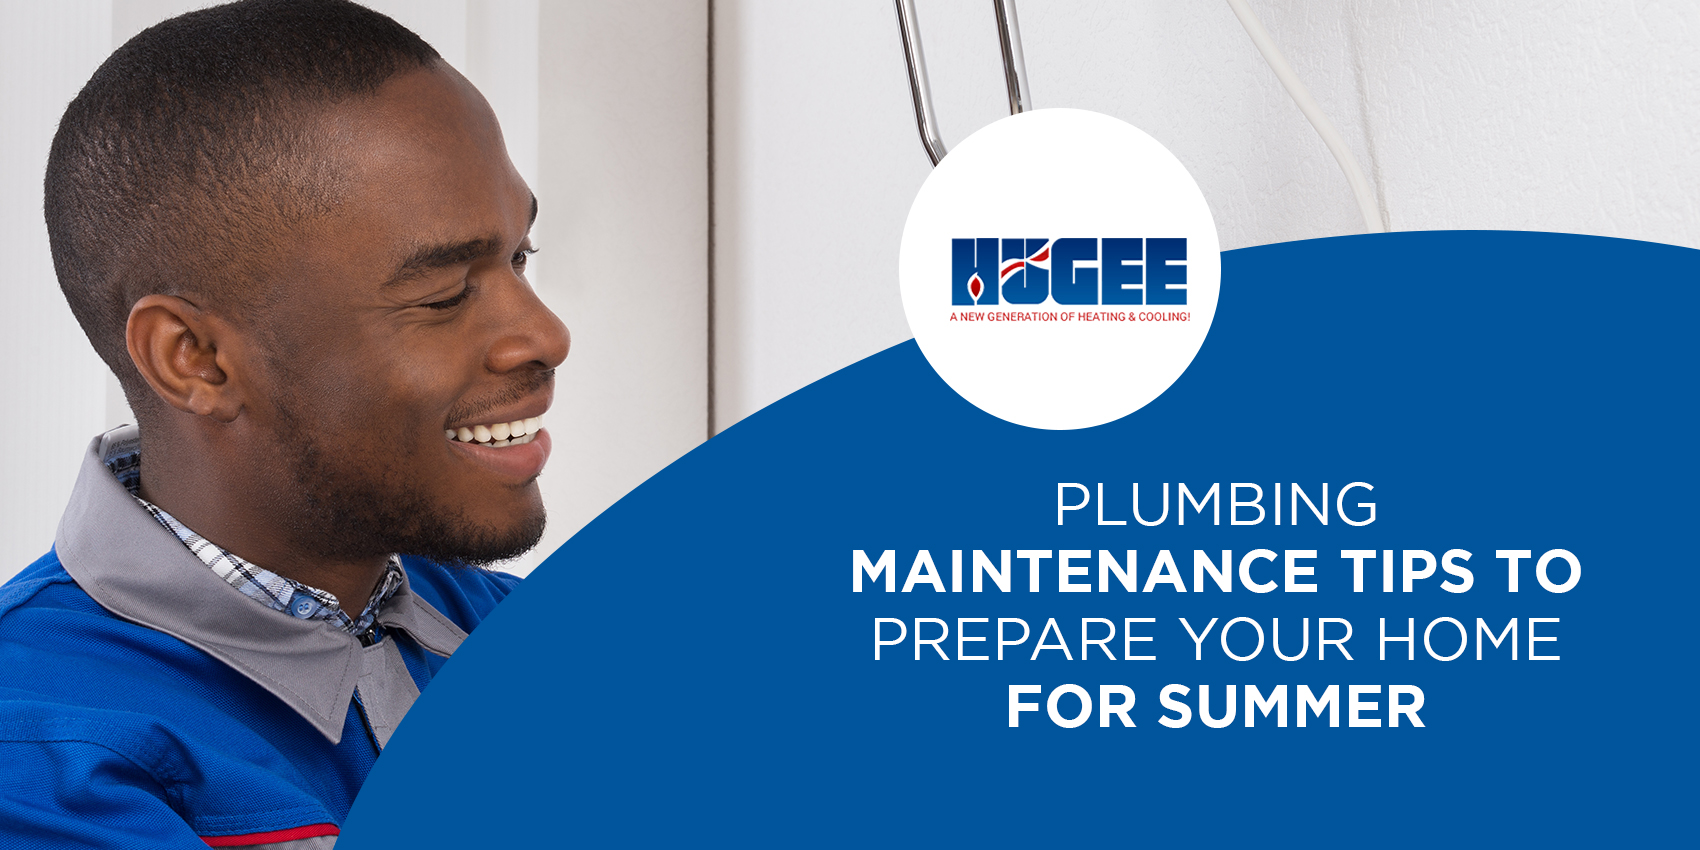 Plumbing Maintenance Tips to Prepare Your Home for SummerPlumbing Maintenance Tips to Prepare Your Home for Summer